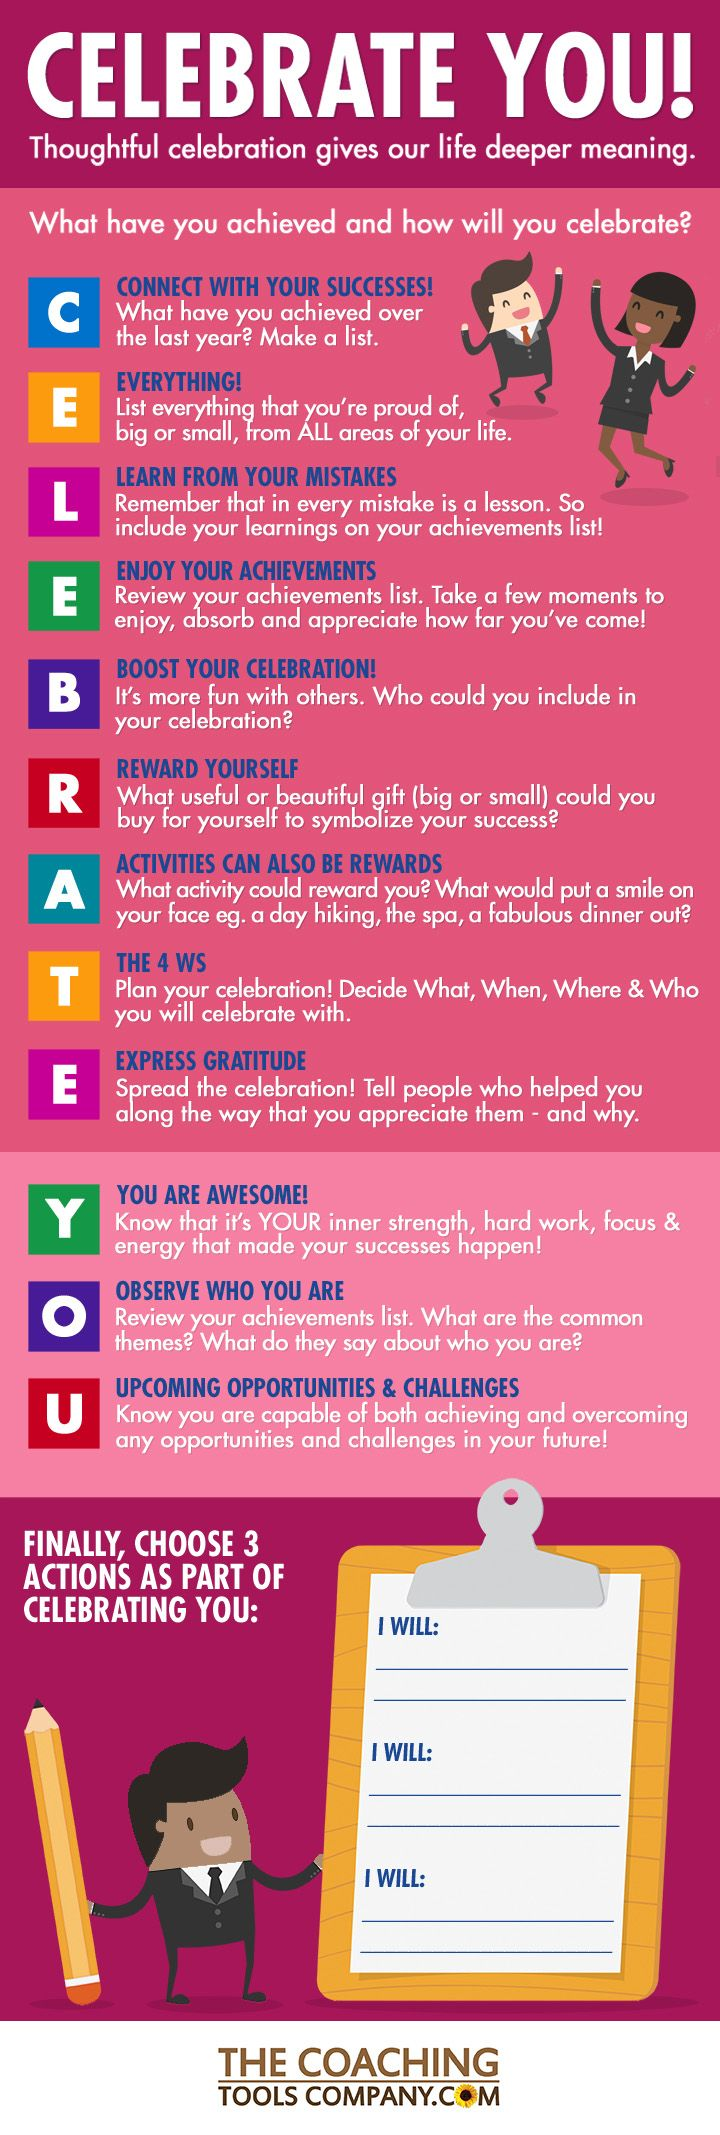 CELEBRATE YOU! Infographic with 12 Tips to Help You & Your Clients Celebrate Your Achievements!   The Launchpad - The Coaching Tools Company Blog #lifecoachingtools